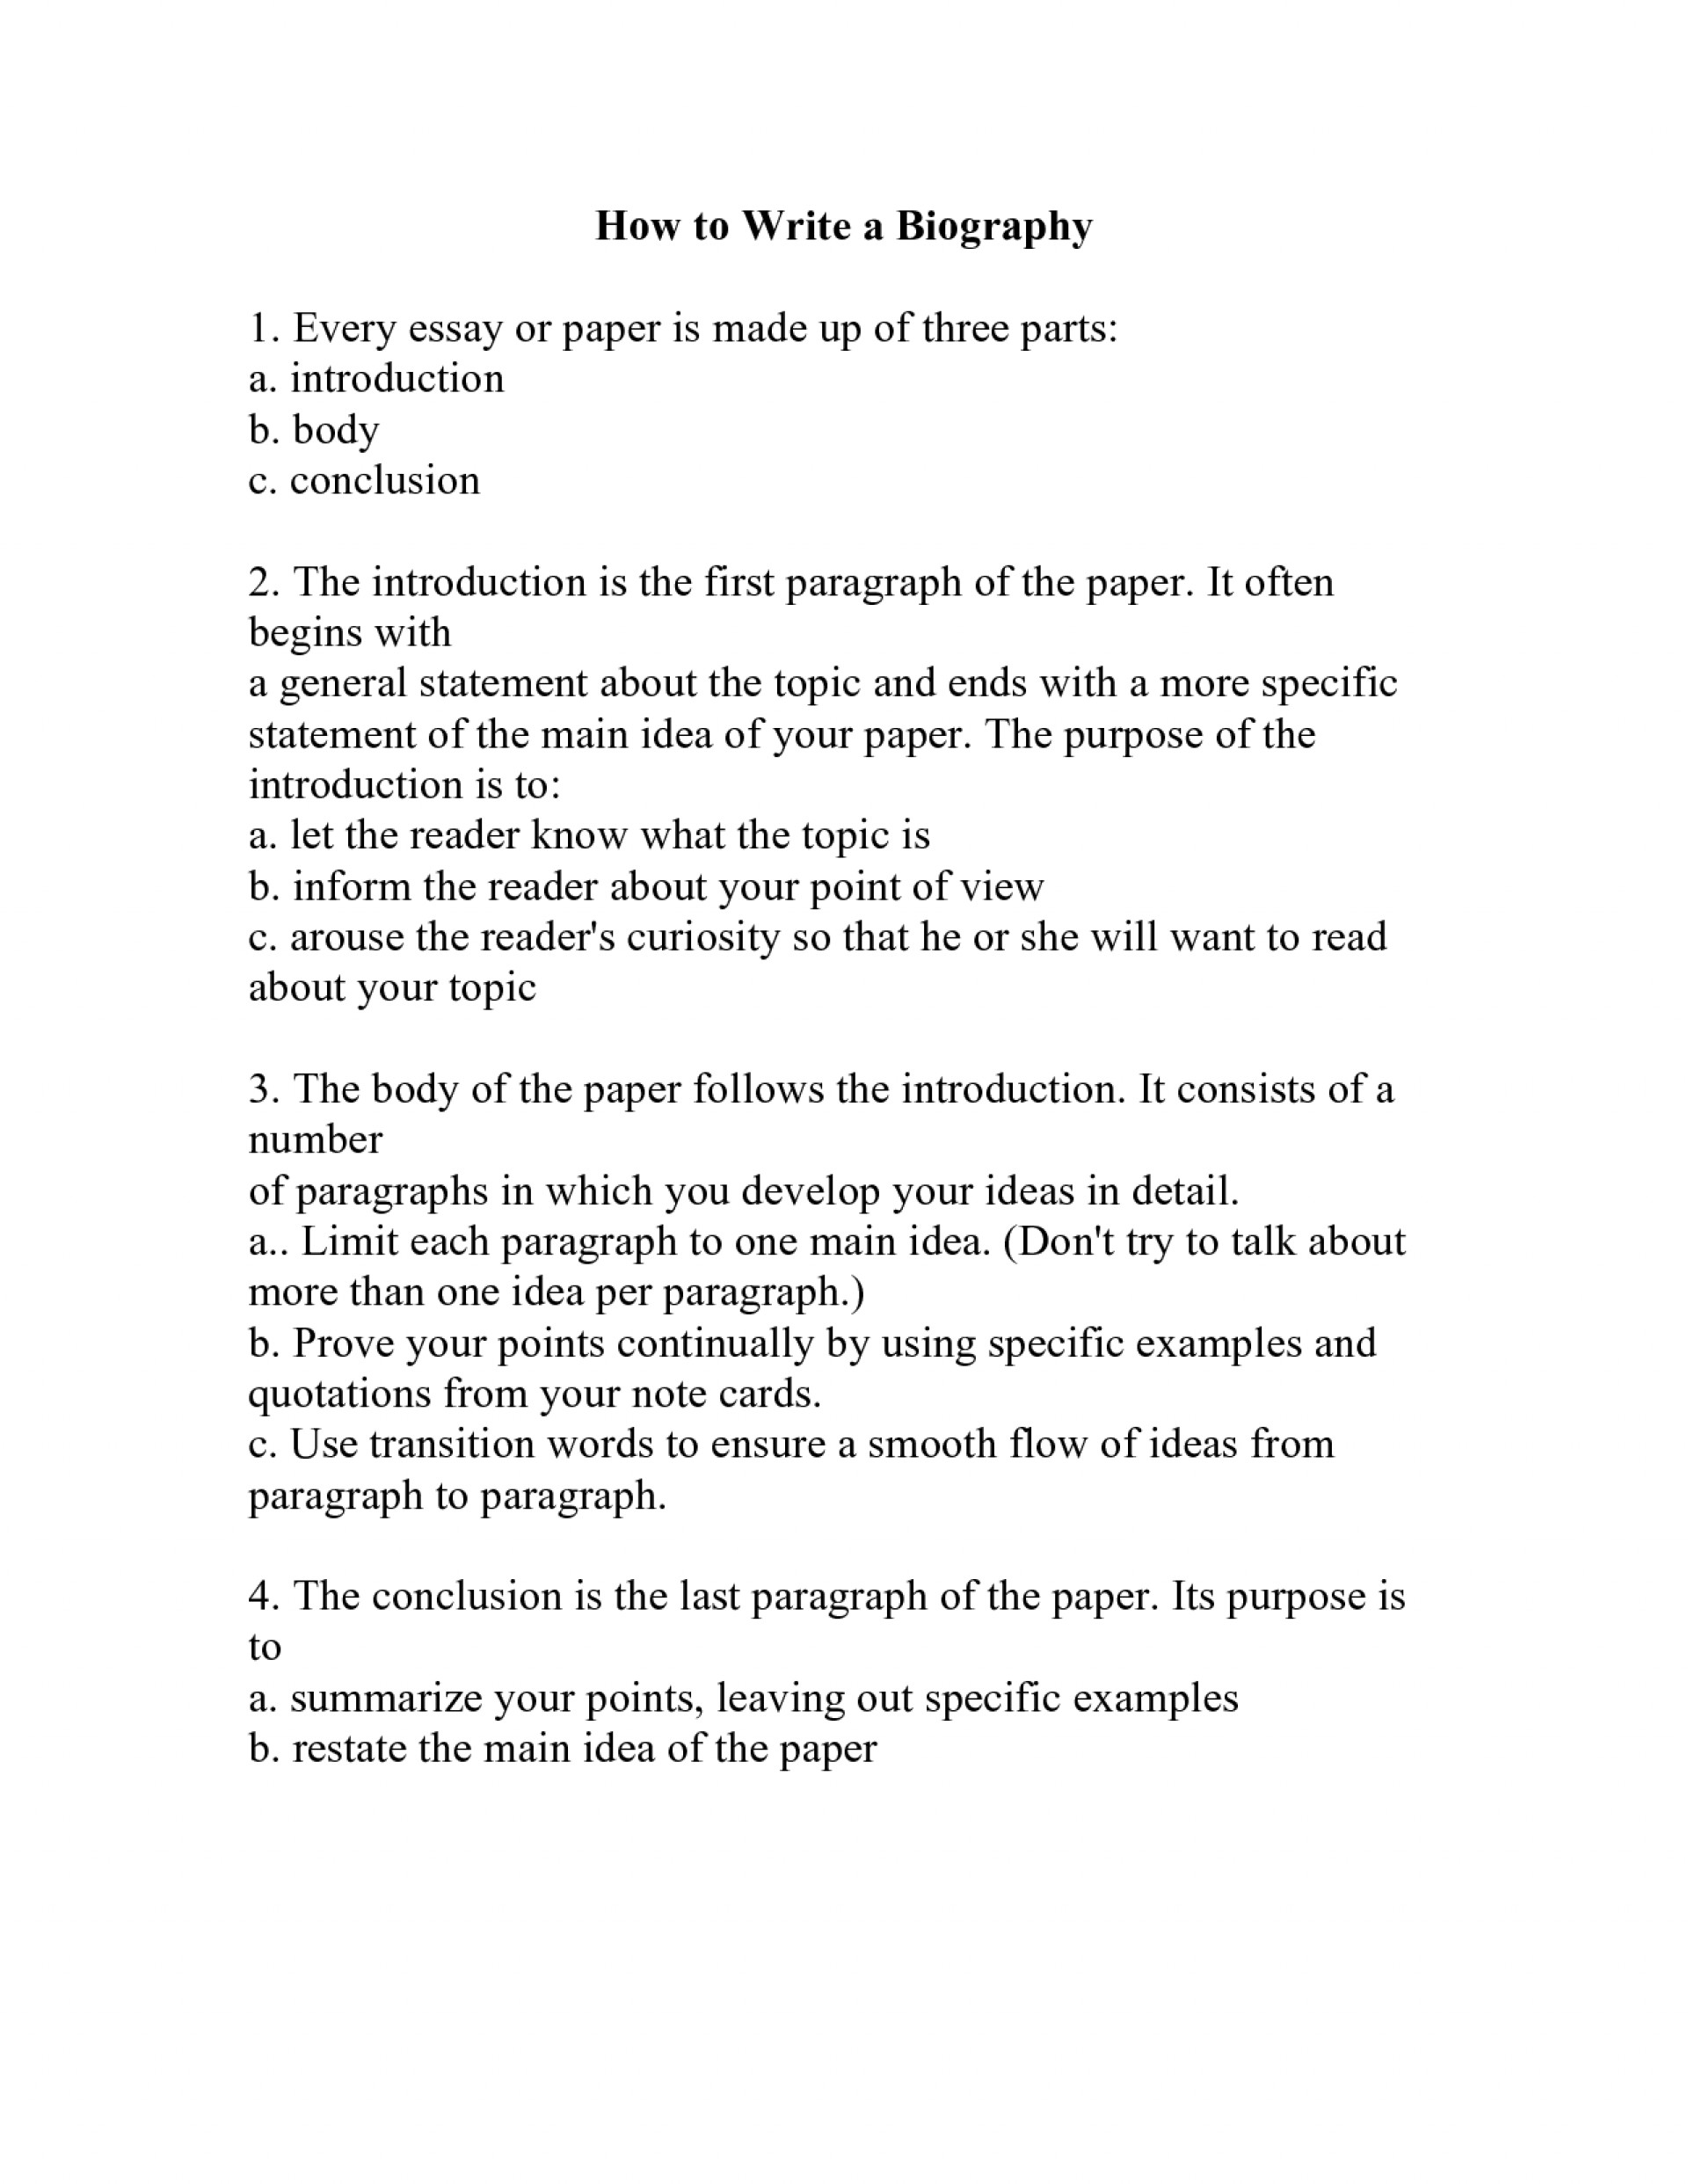 008 How To Write Biography 88169 Short Essay Surprising A Response Answer Question In Apa Format 1920